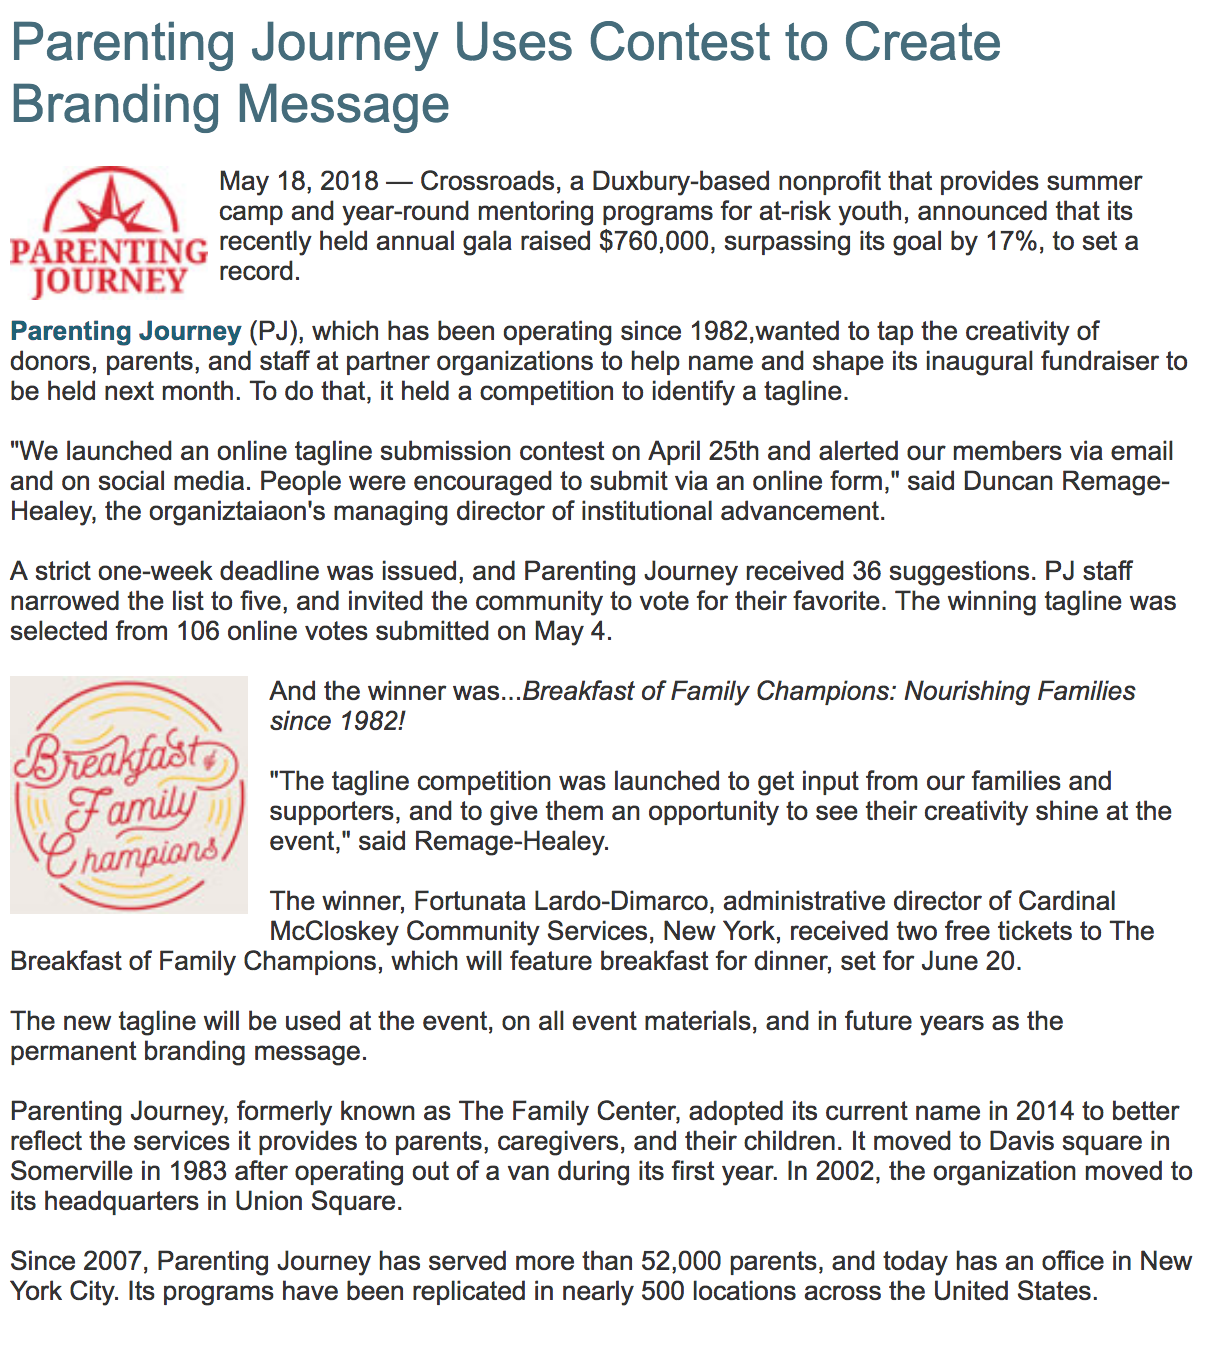 PRESS - Parenting Journey Uses Contest to Create Branding